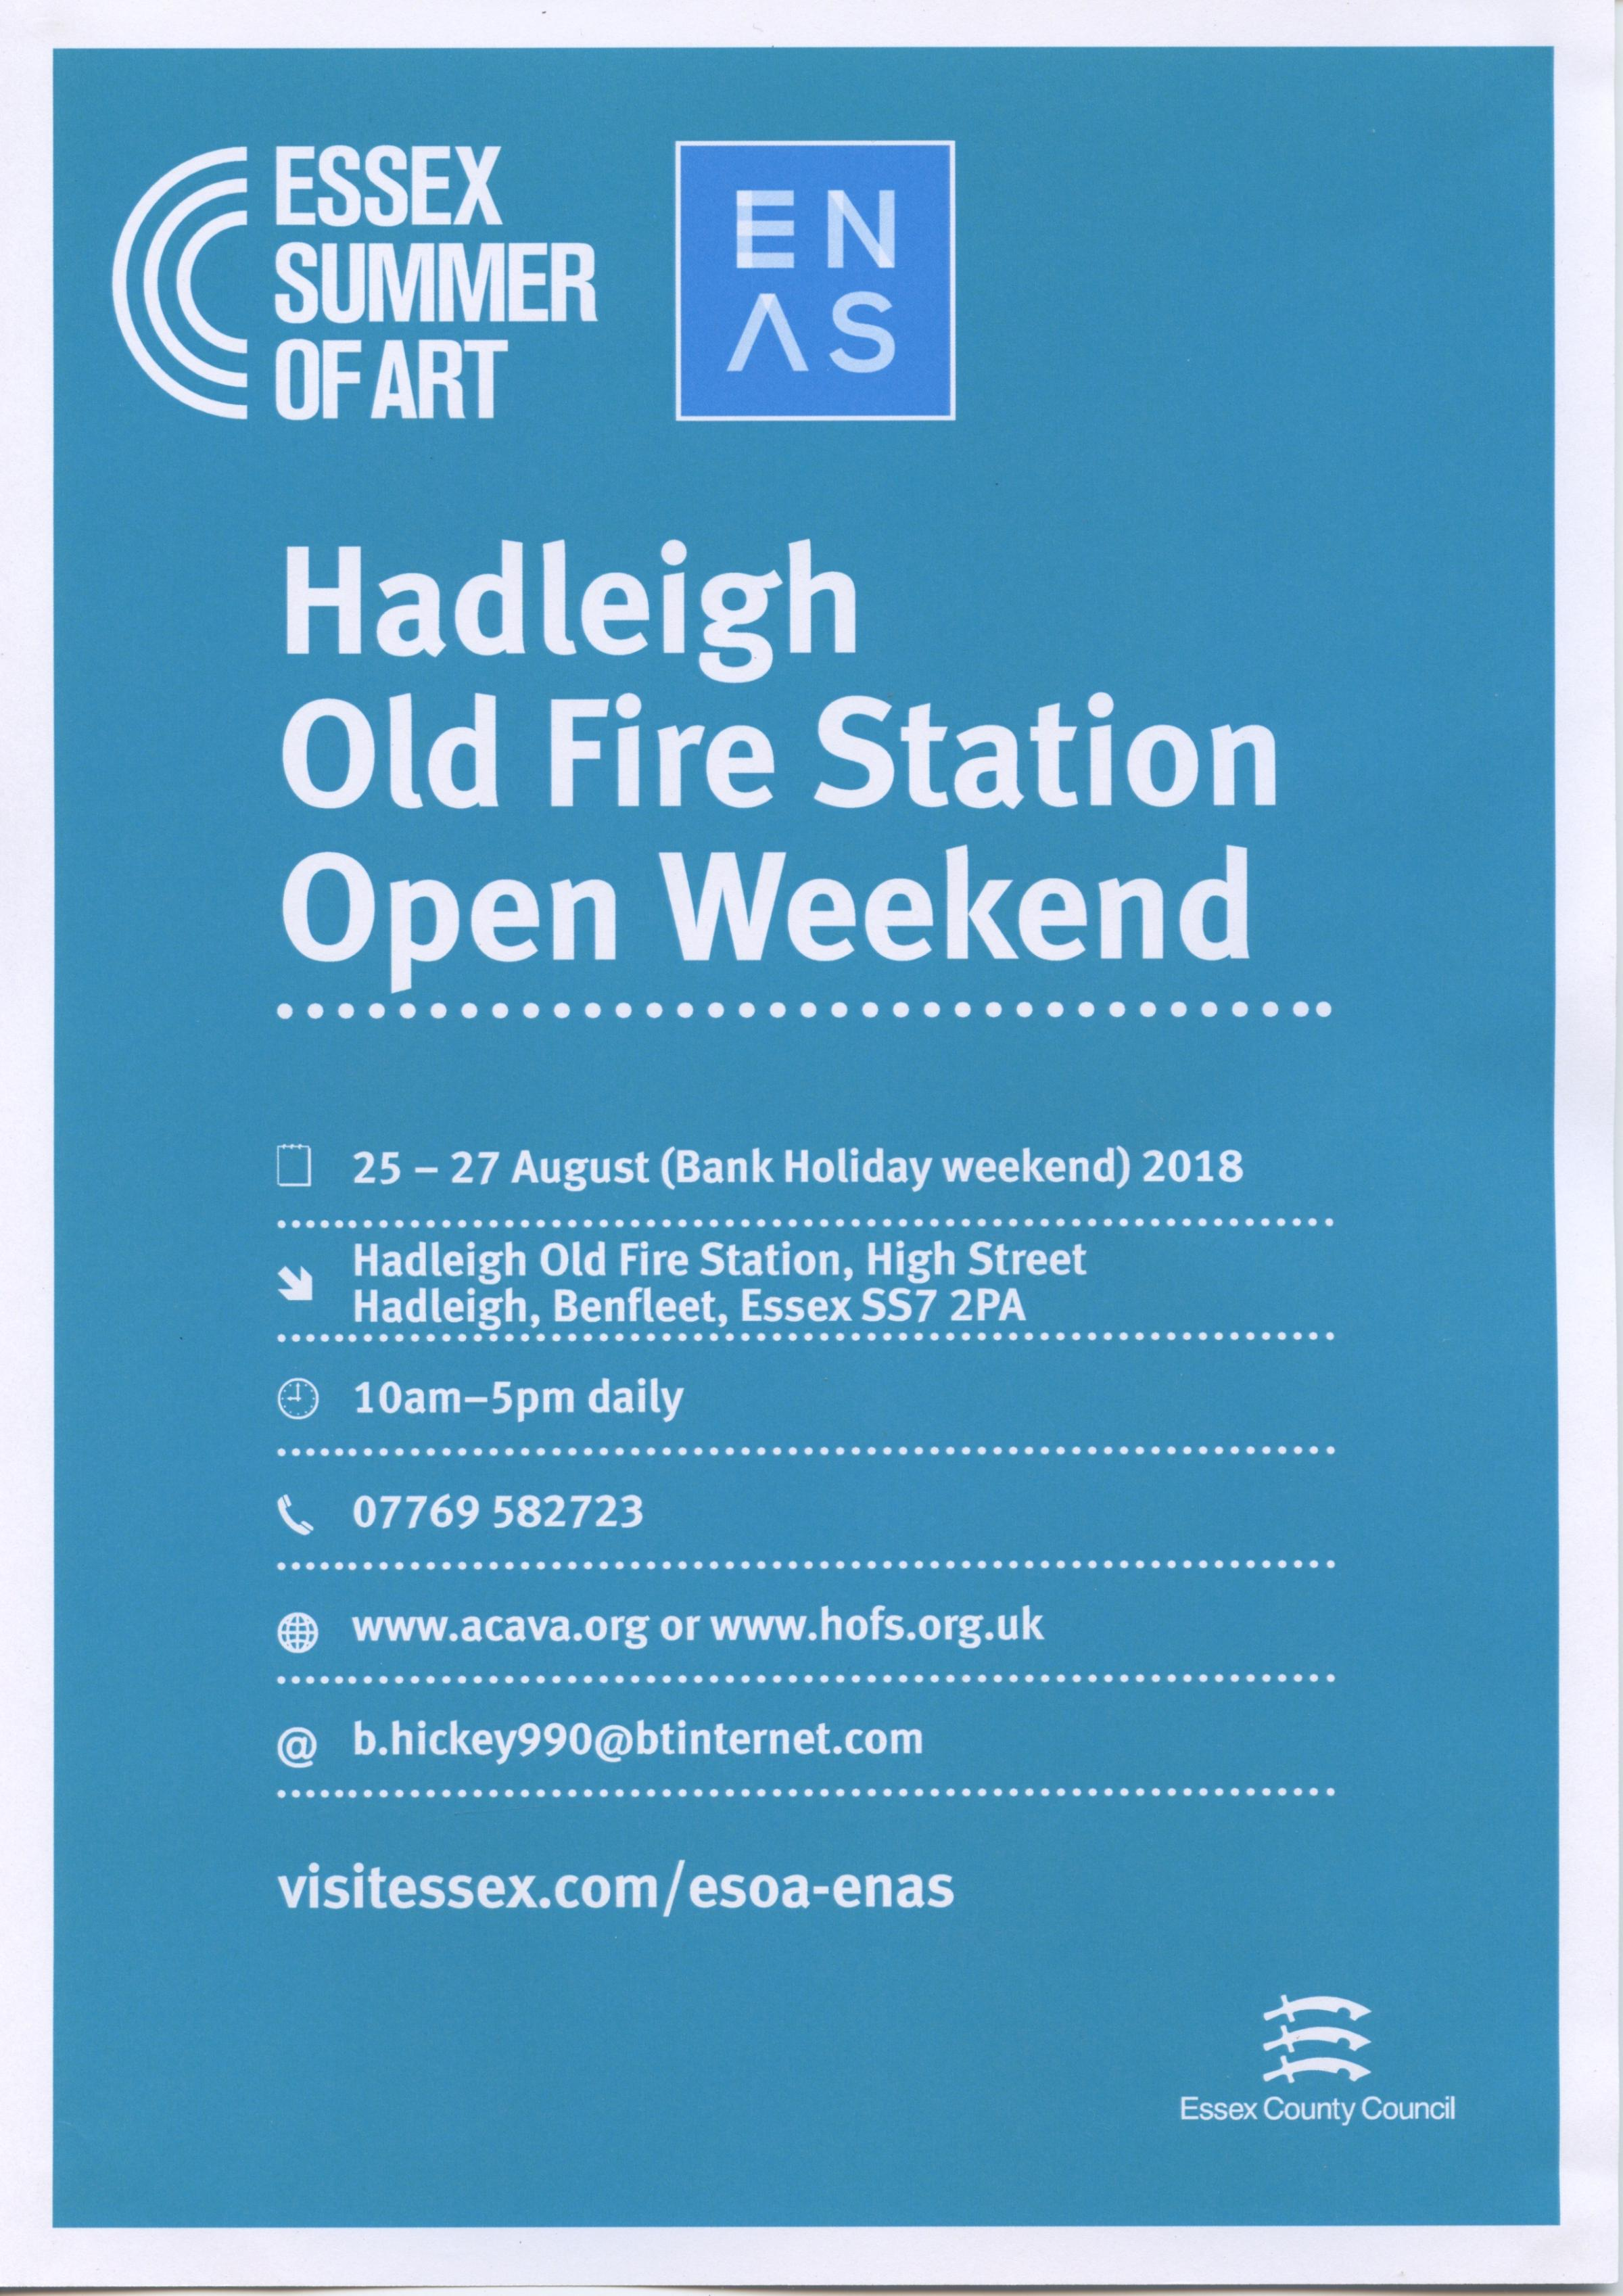 Hadleigh Old Fire Station Open Weekend